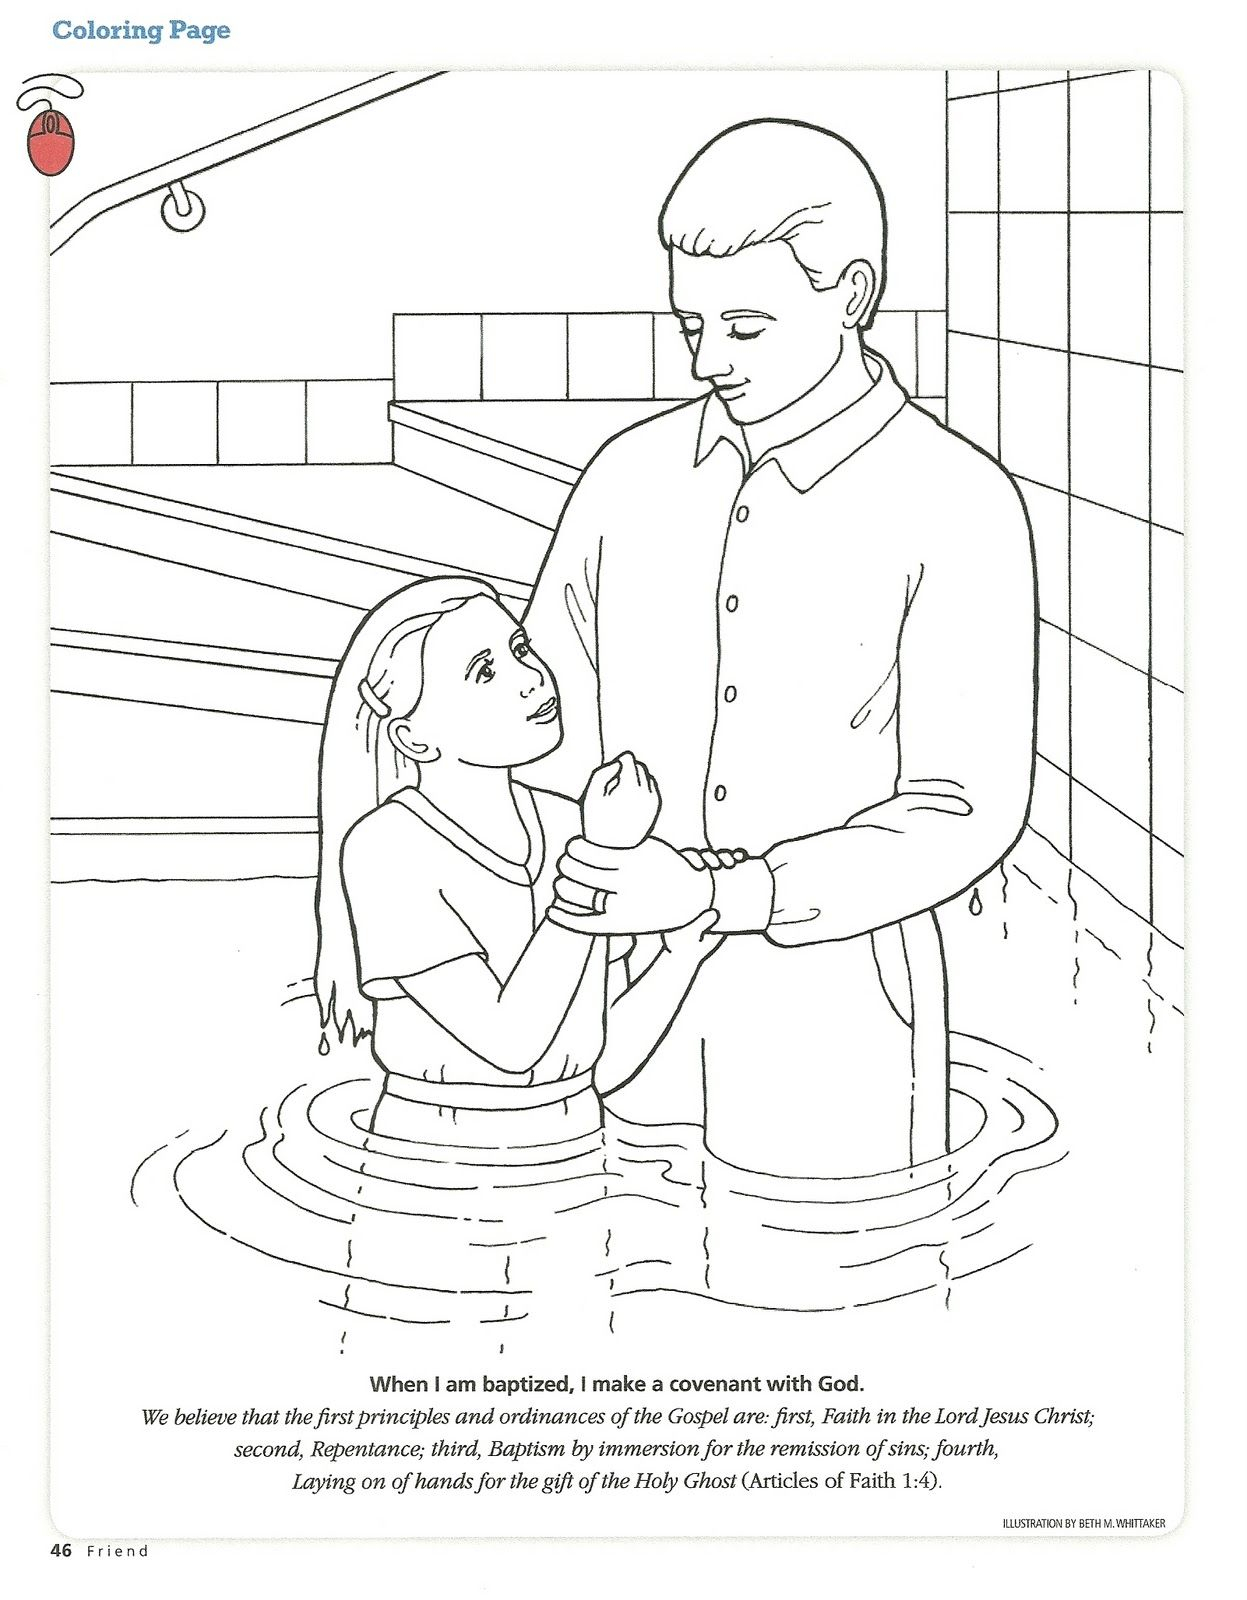 children helping others coloring pages Download-Helping others coloring pages 6-d